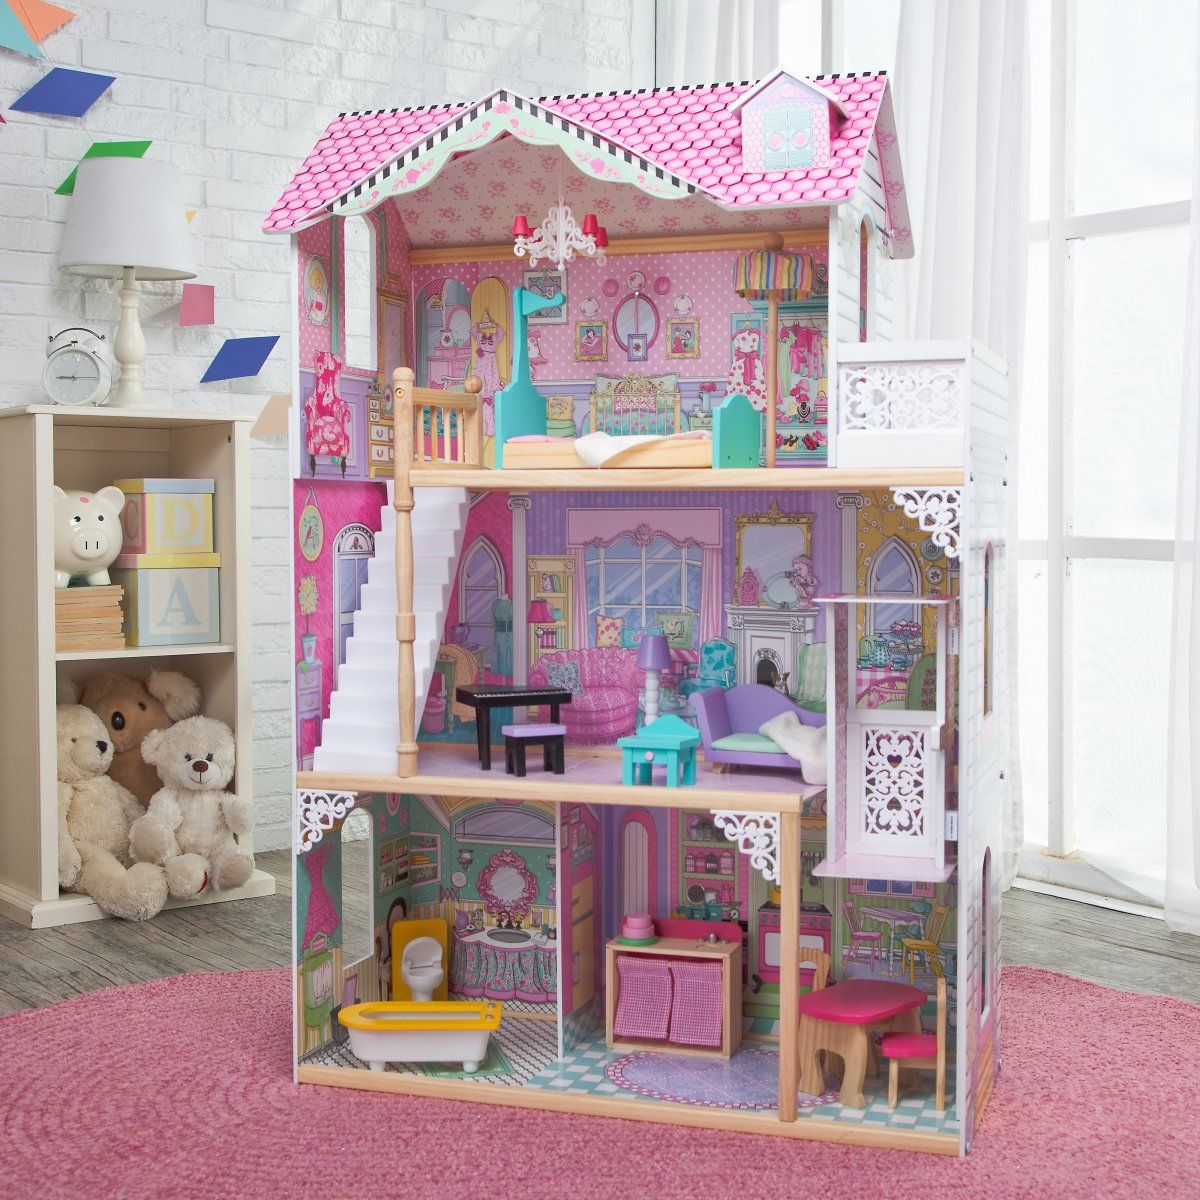 1000+ images about doll house on Pinterest Dollhouse accessories ... - ^